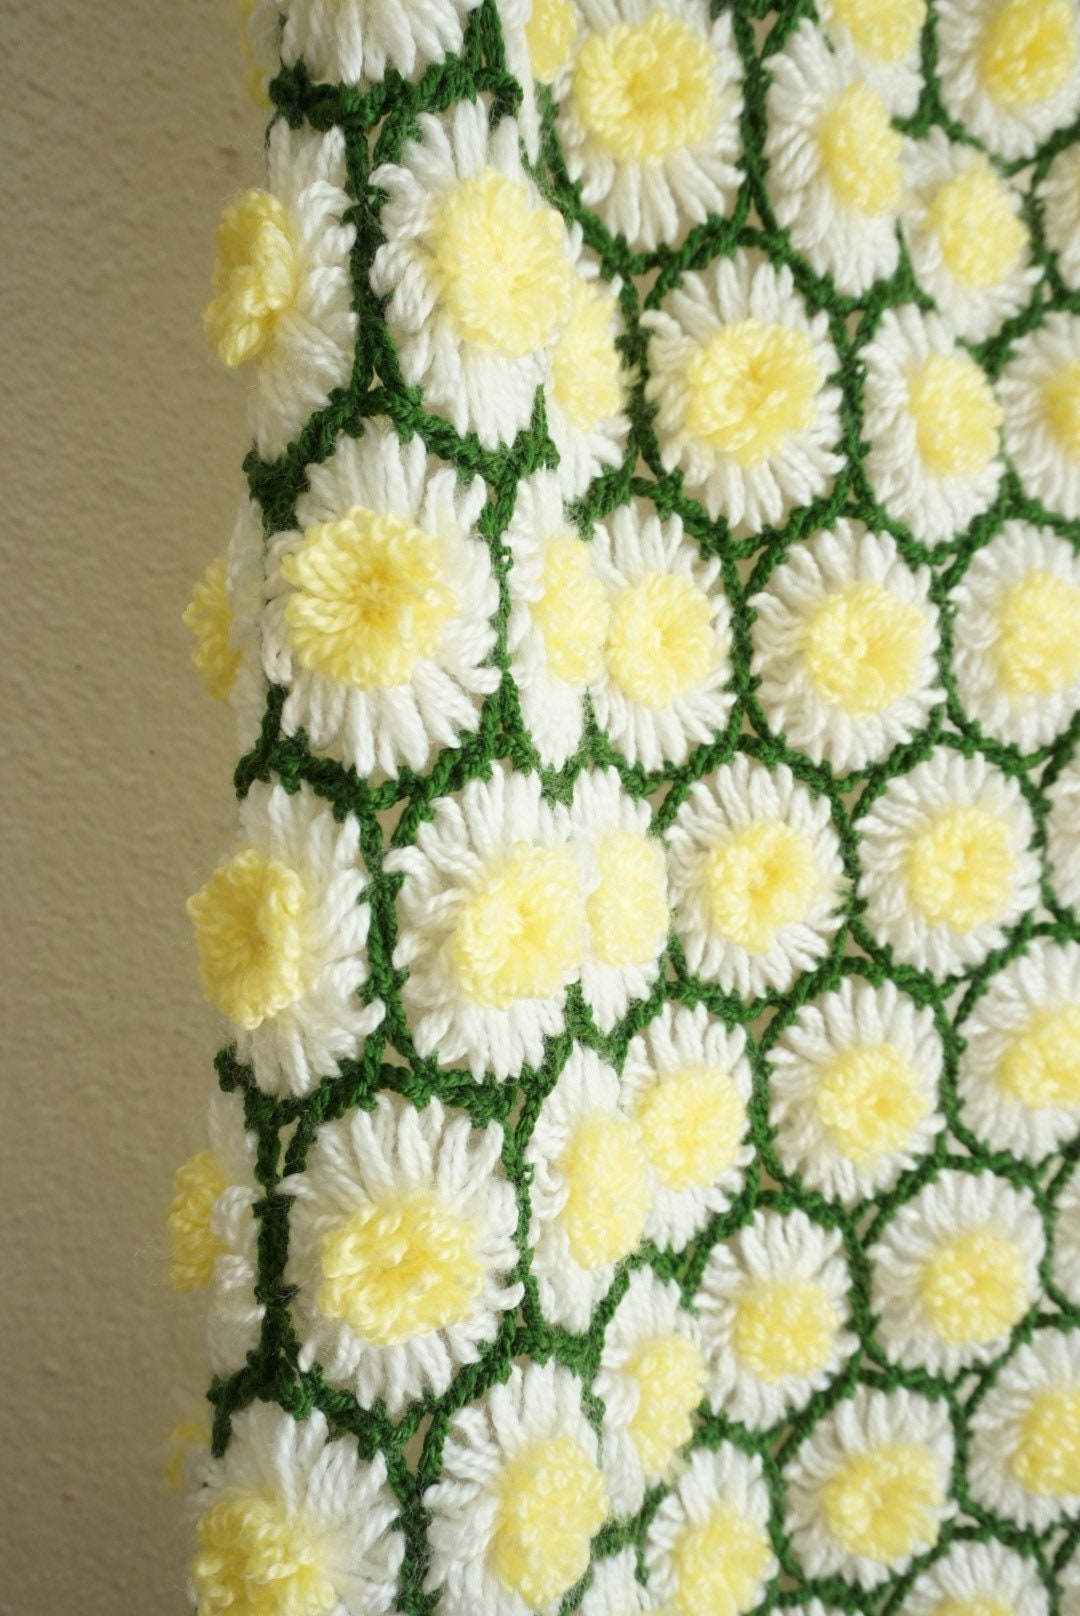 Coveted vintage daisy crochet knit honeycomb afghan blanket throw izmirmasajfo